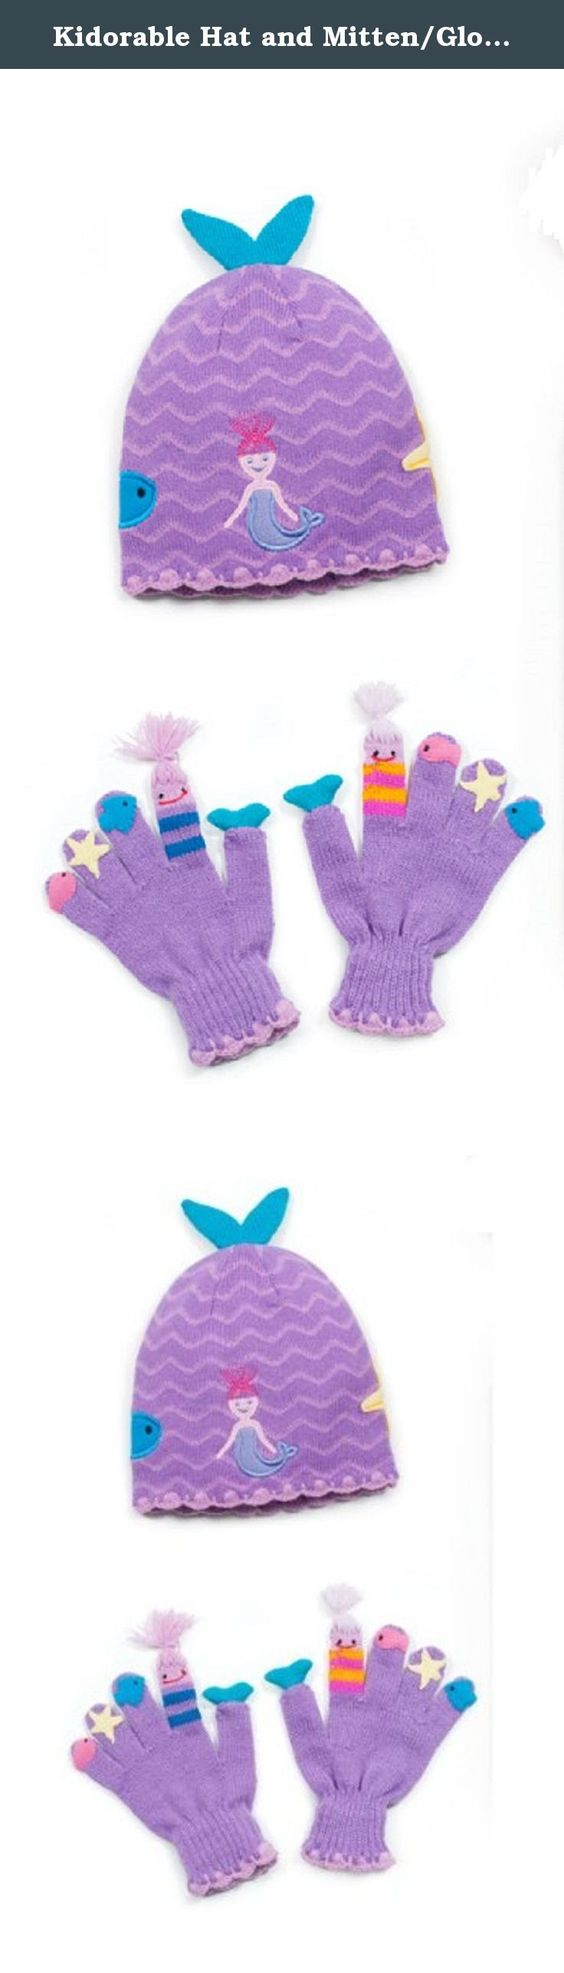 Kidorable Hat and Mitten/Glove Set (Small Mitten/Glove, Mermaid). Nothing brightens up the cold months better than Kidorable knitwear. Children ask to wear it all season long. Our comfortable, acrylic knitwear products are available individually or as a set. Hats and scarves are one size fits most. All gloves and mittens styles are available in small (ages three to five), medium (ages six to eight) and large (ages nine and up).